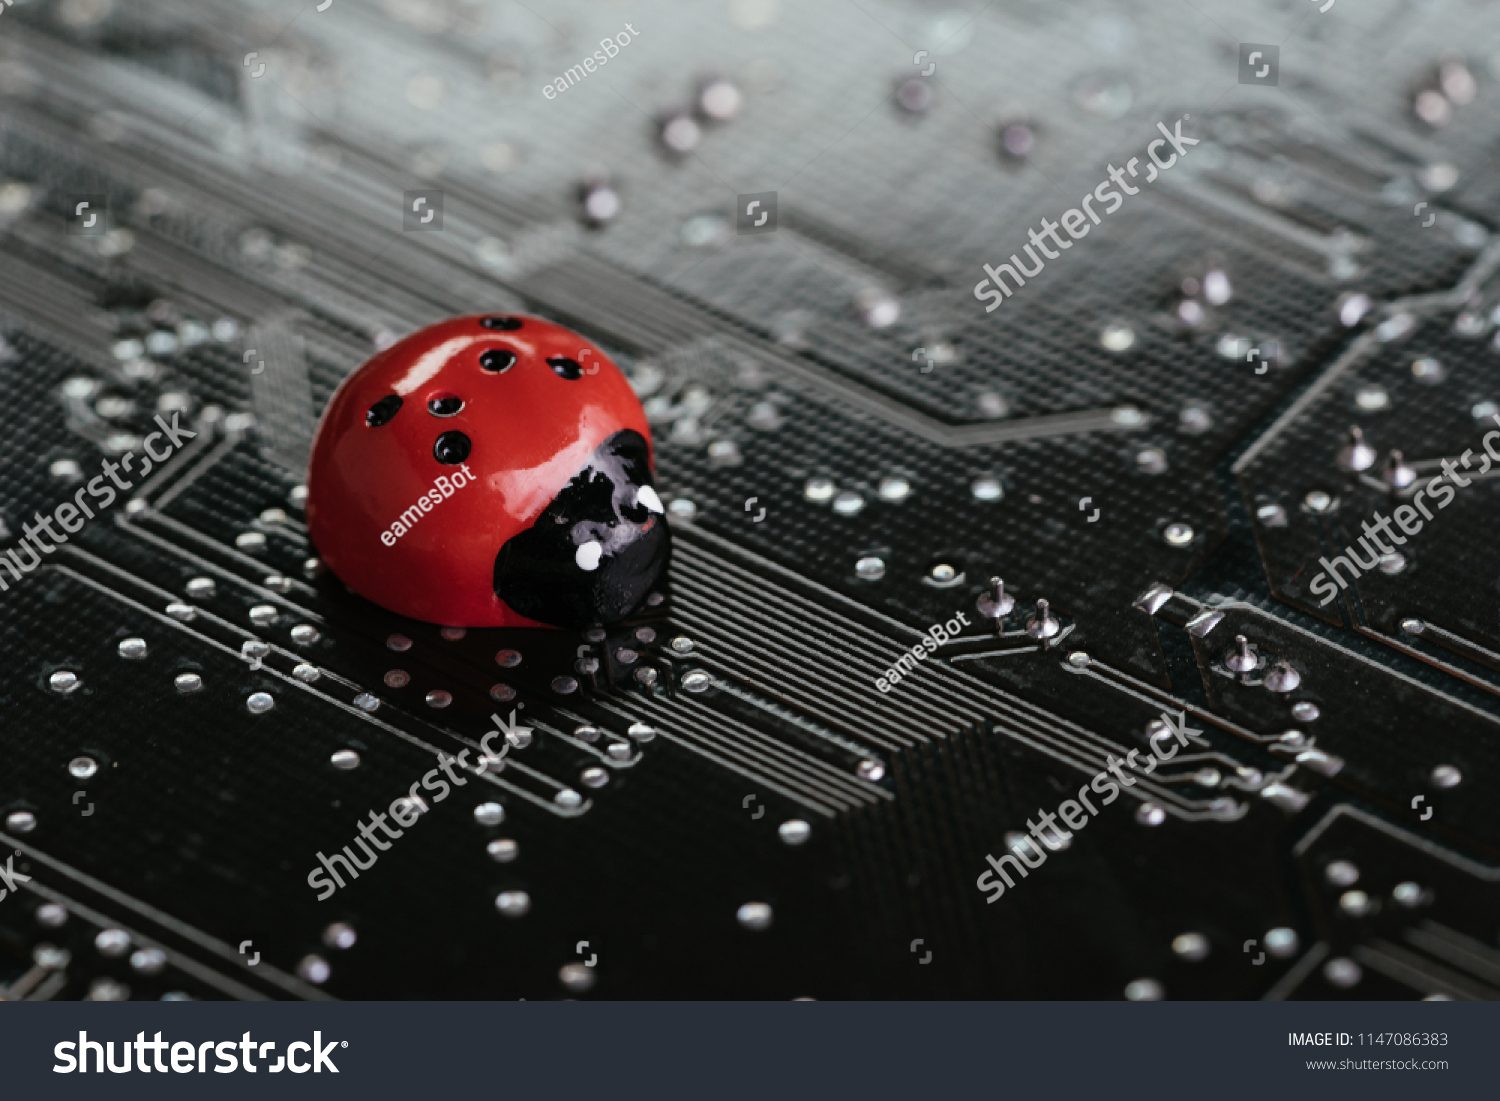 Computer bug, failure or error of software and hardware concept, miniature red ladybug on black computer motherboard PCB with soldering, programmer can debug to search for cause of error. #1147086383